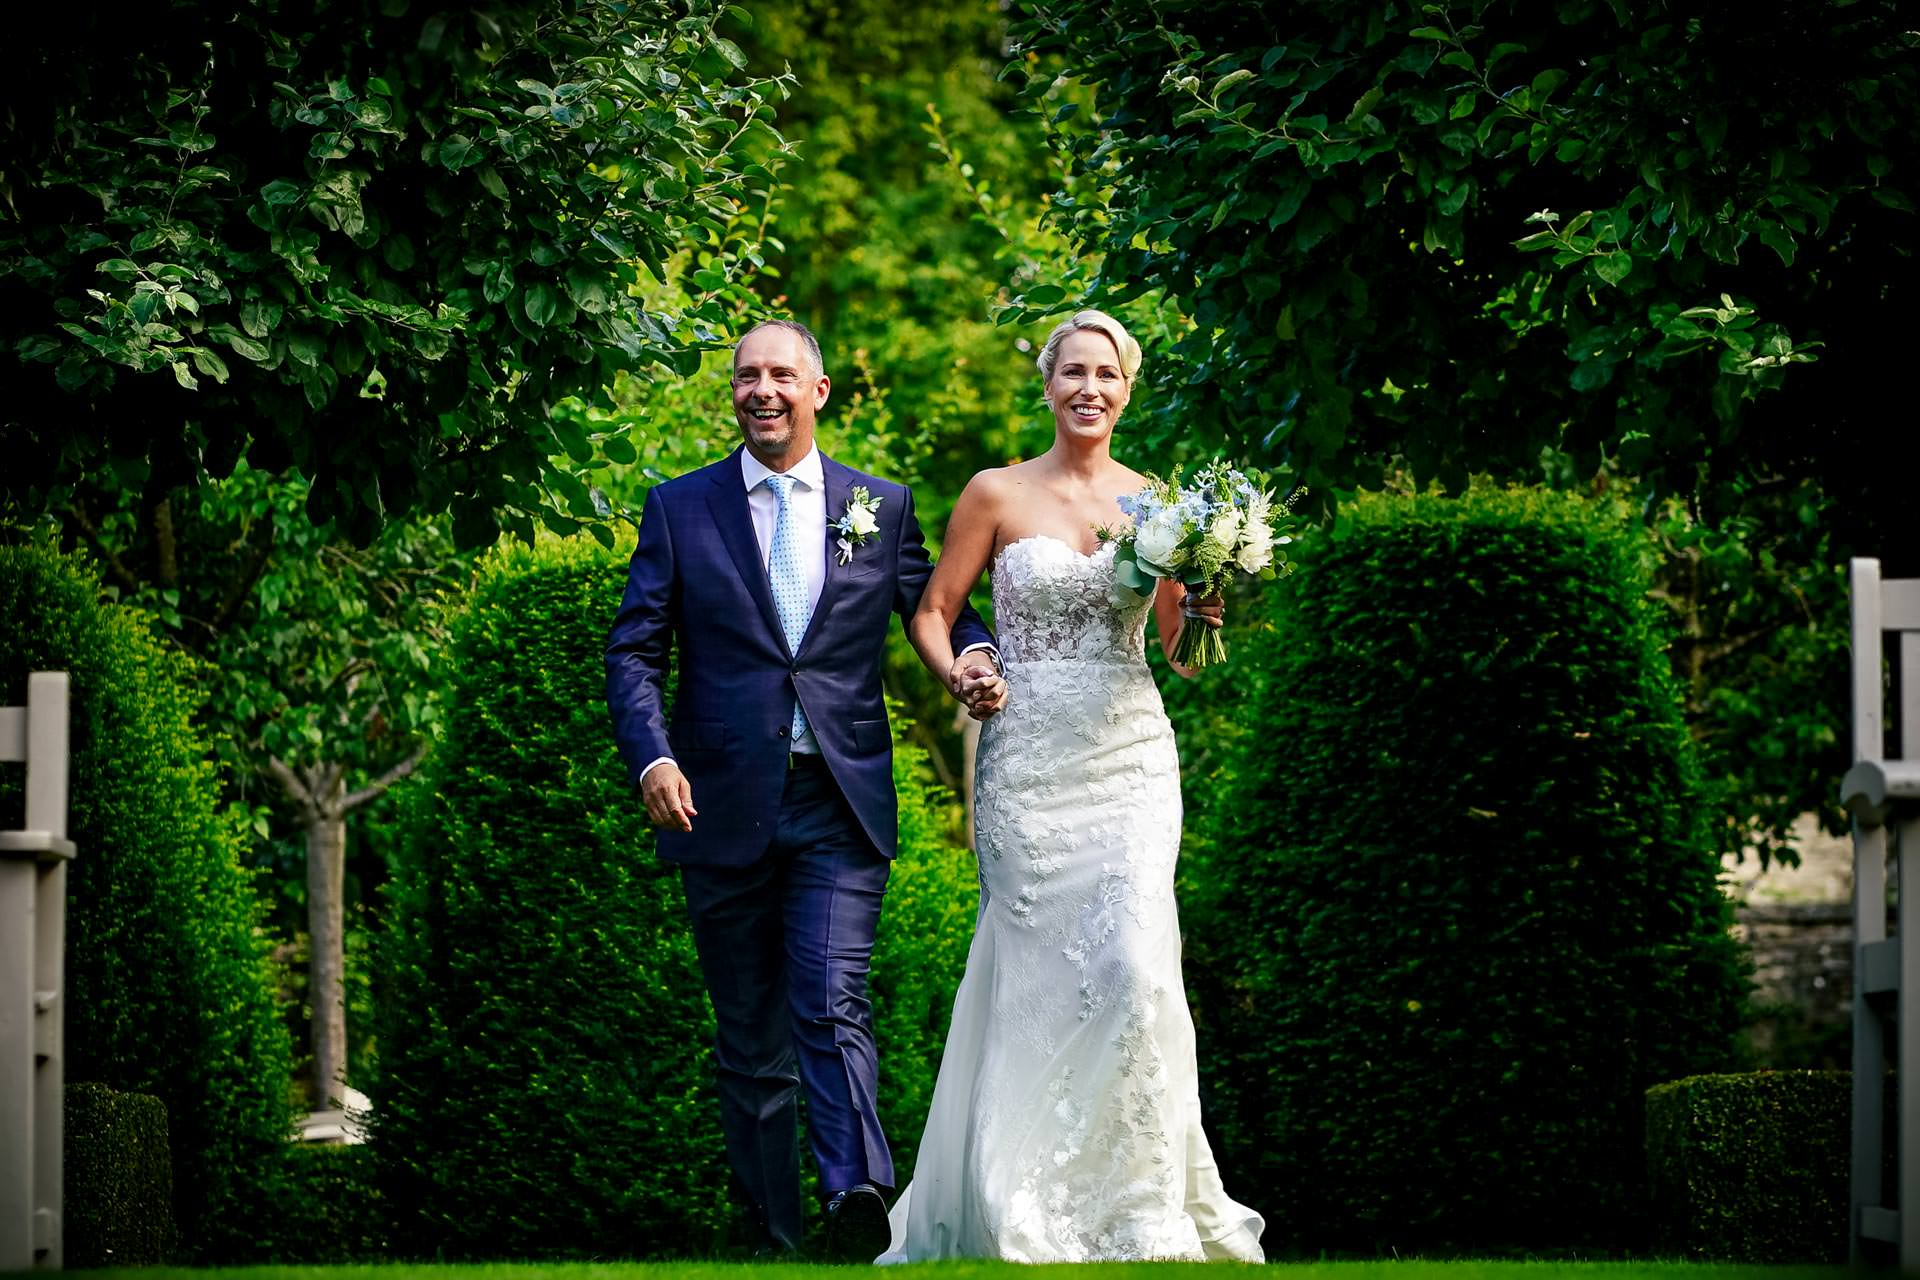 Bride and groom walk into the garden ceremony at a Temple Guiting Barns Wedding in Gloucestershire